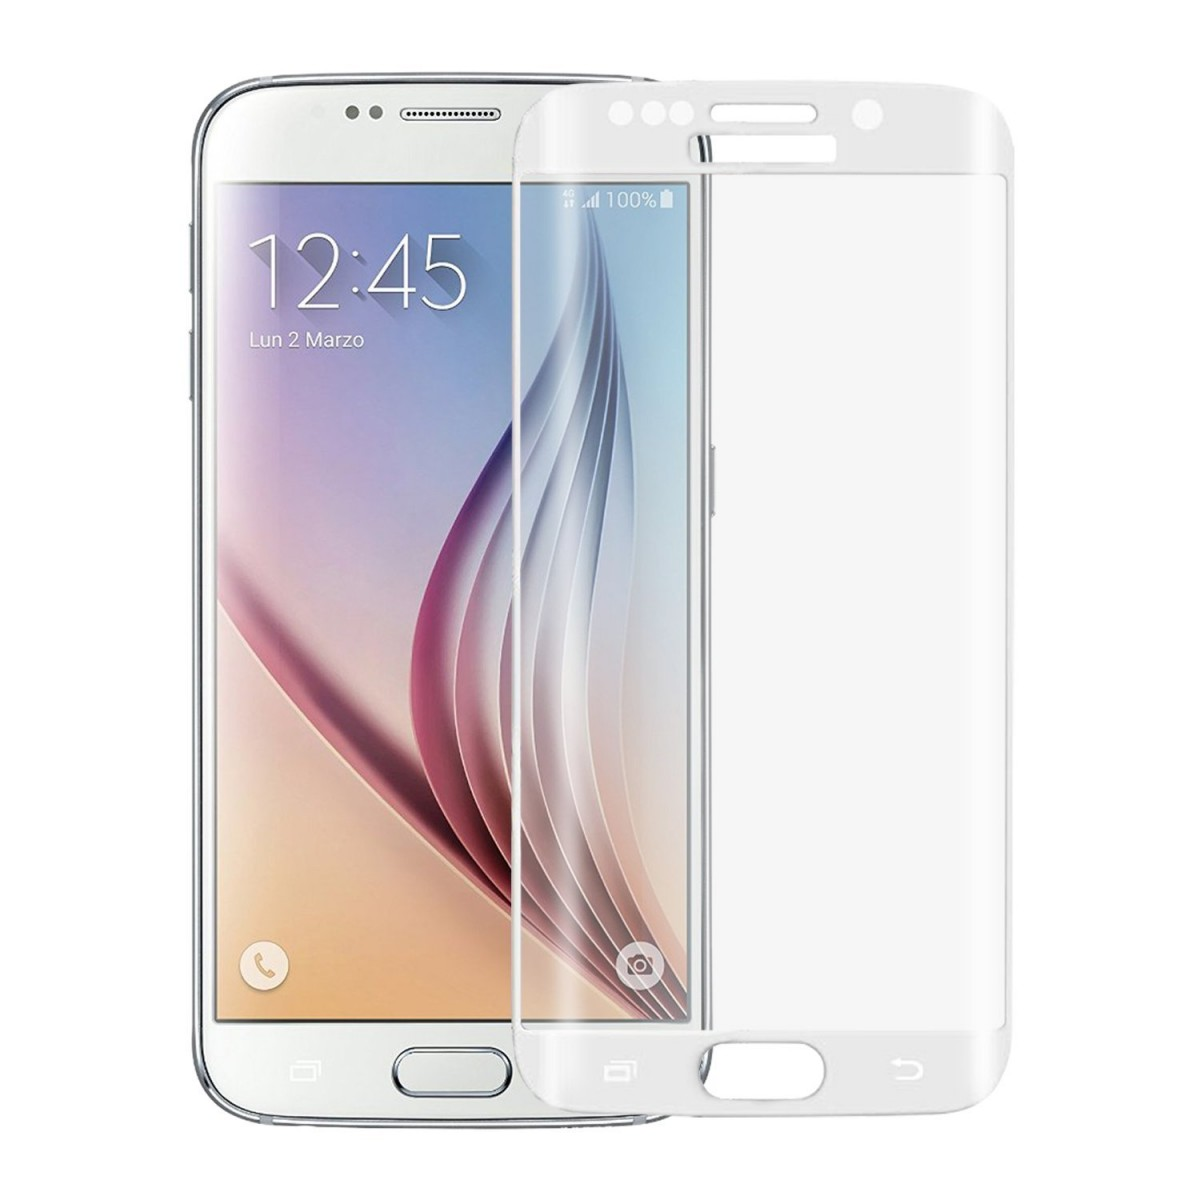 ScreenShield Tempered Glass pro Samsung Galaxy S6 edge SM-G925F, zlatá displej SAM-TGGG925-D